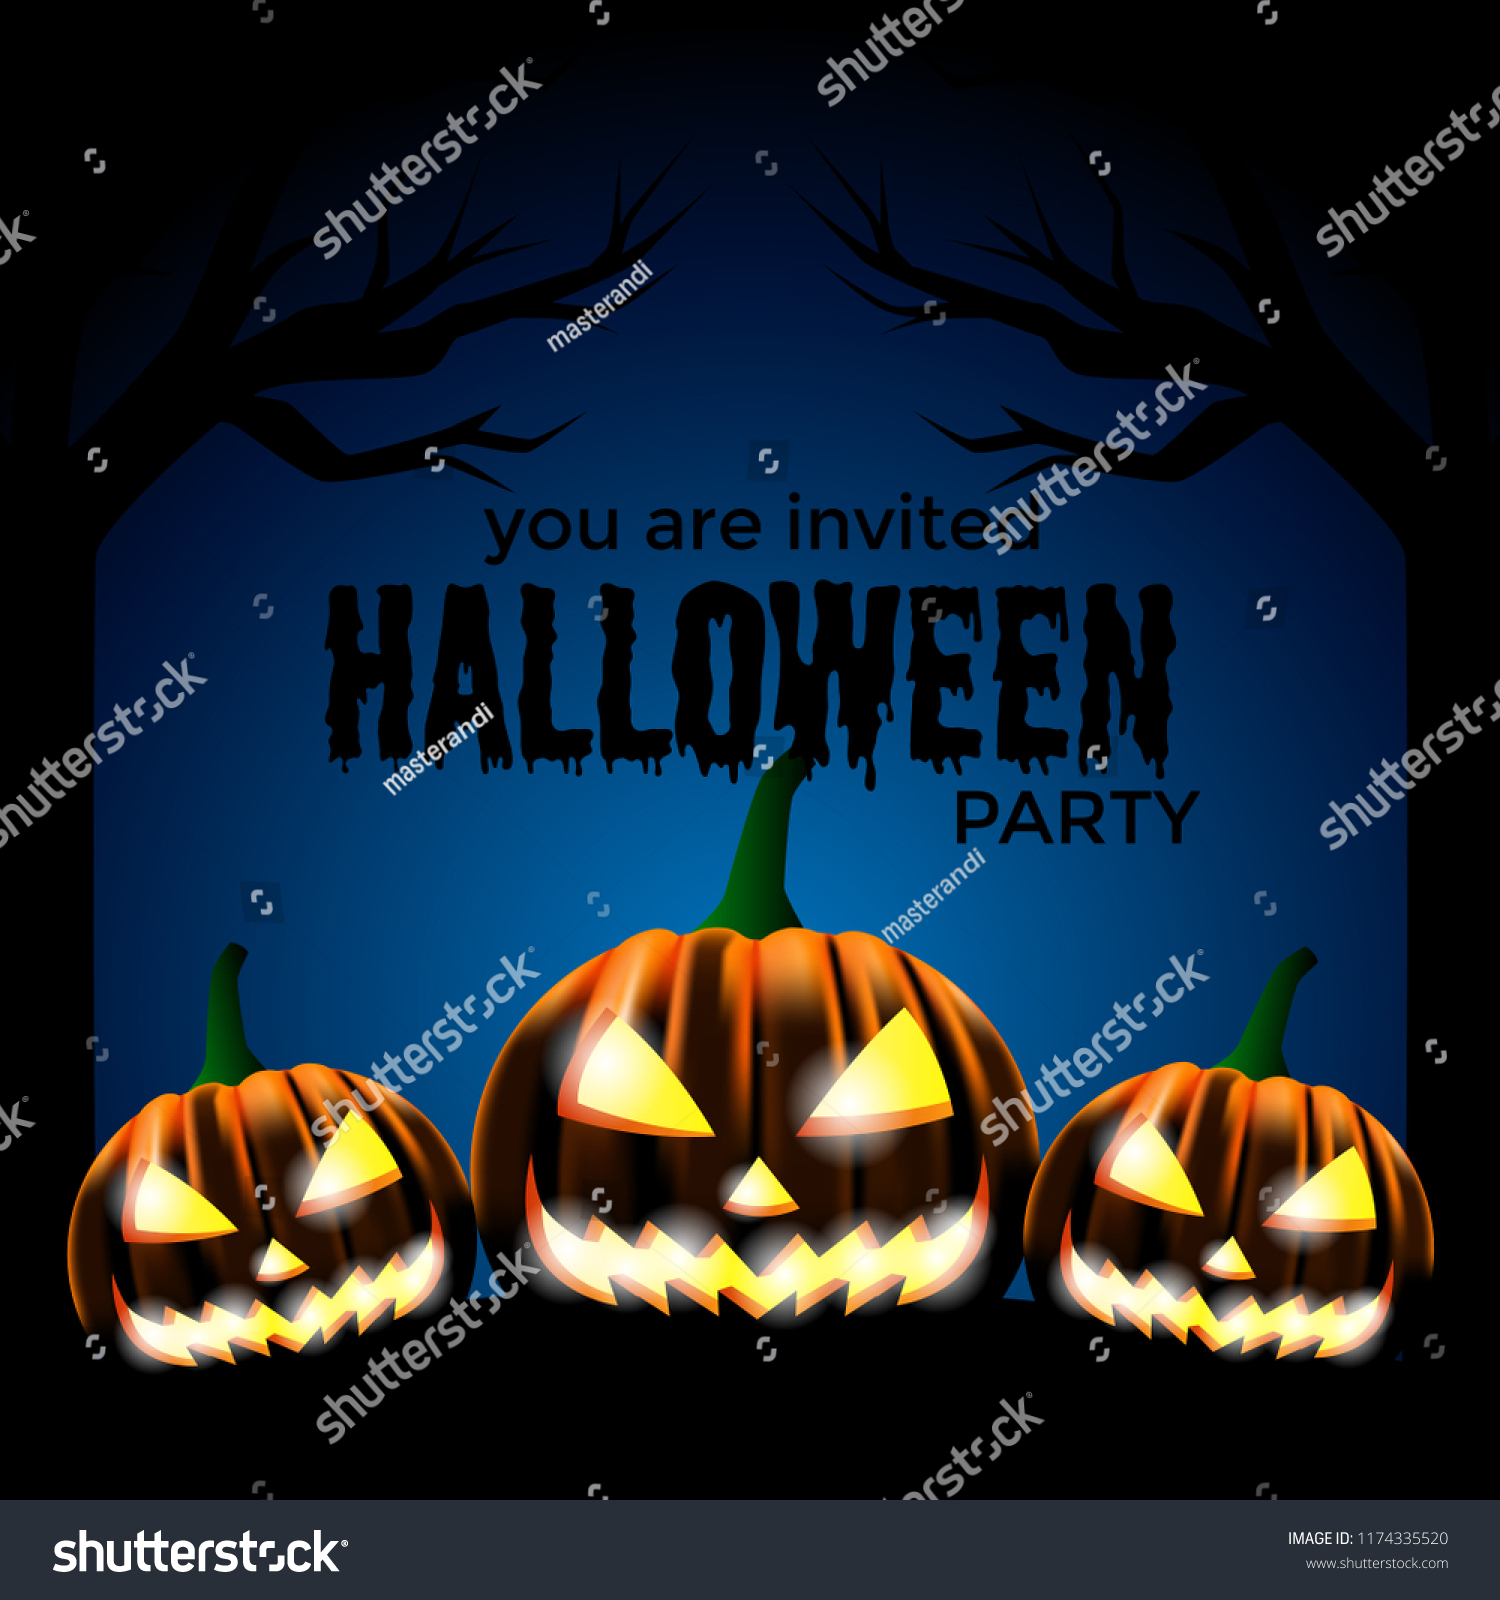 Halloween Party Invitation Template With Scary Pumpkin Face Vector Illustration